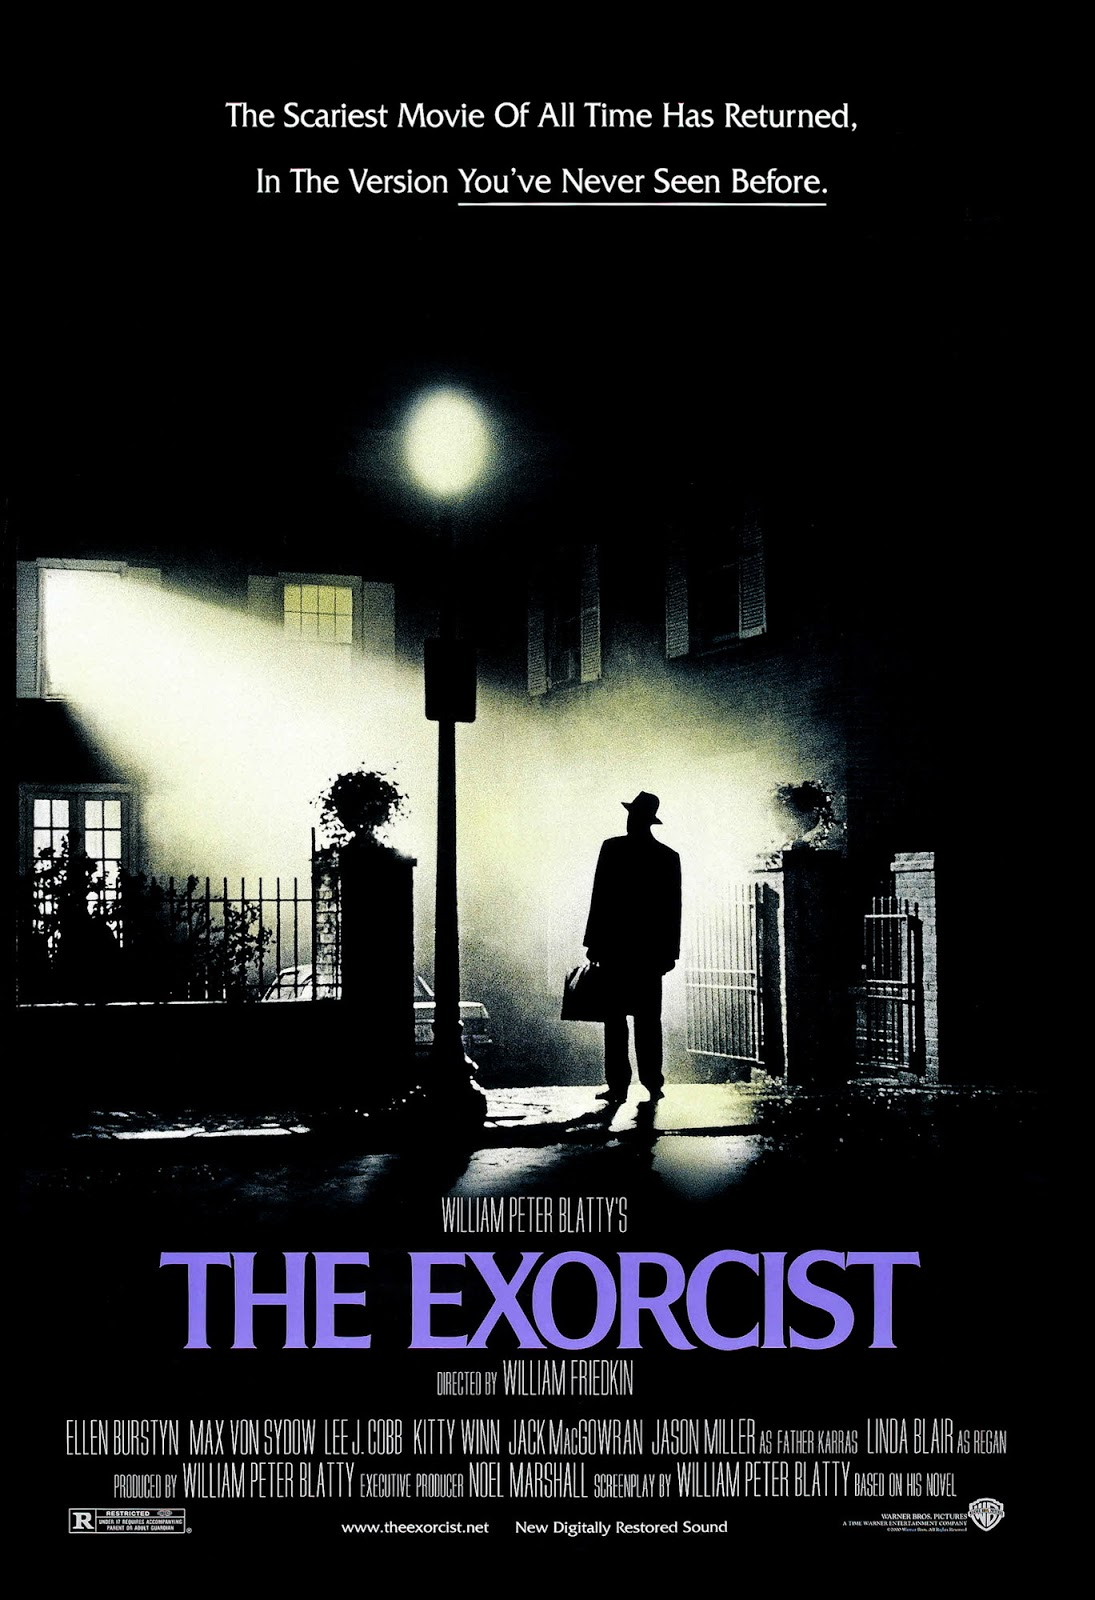 Linda Blair in the Movie: The Exorcist, 1973 (Gif)   BlueisKewl